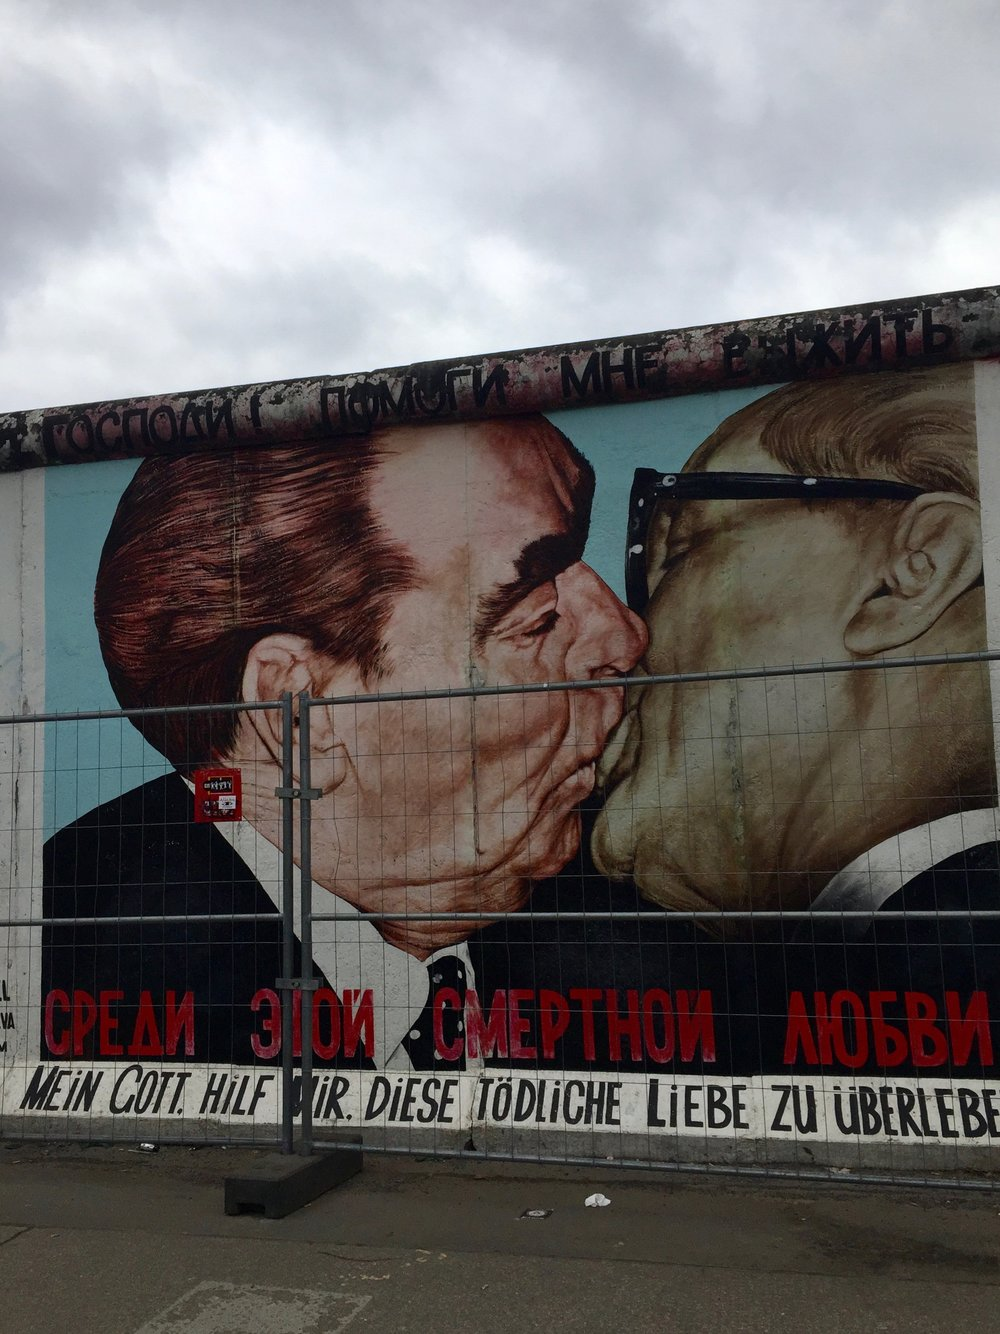 Of course I saw the  Berlin Wall .